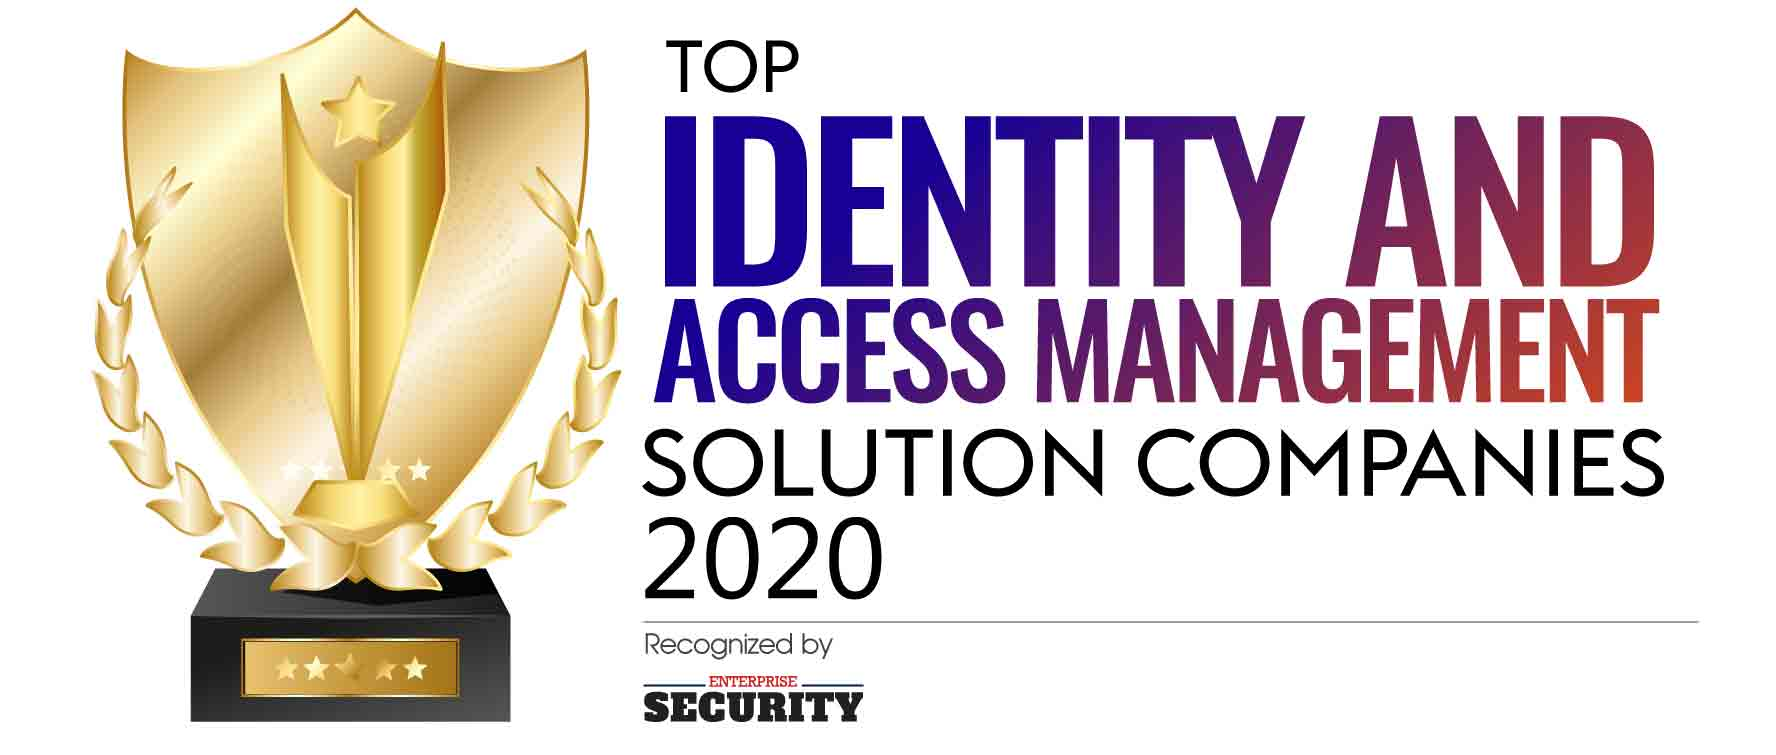 Top Identity and Access Management Companies